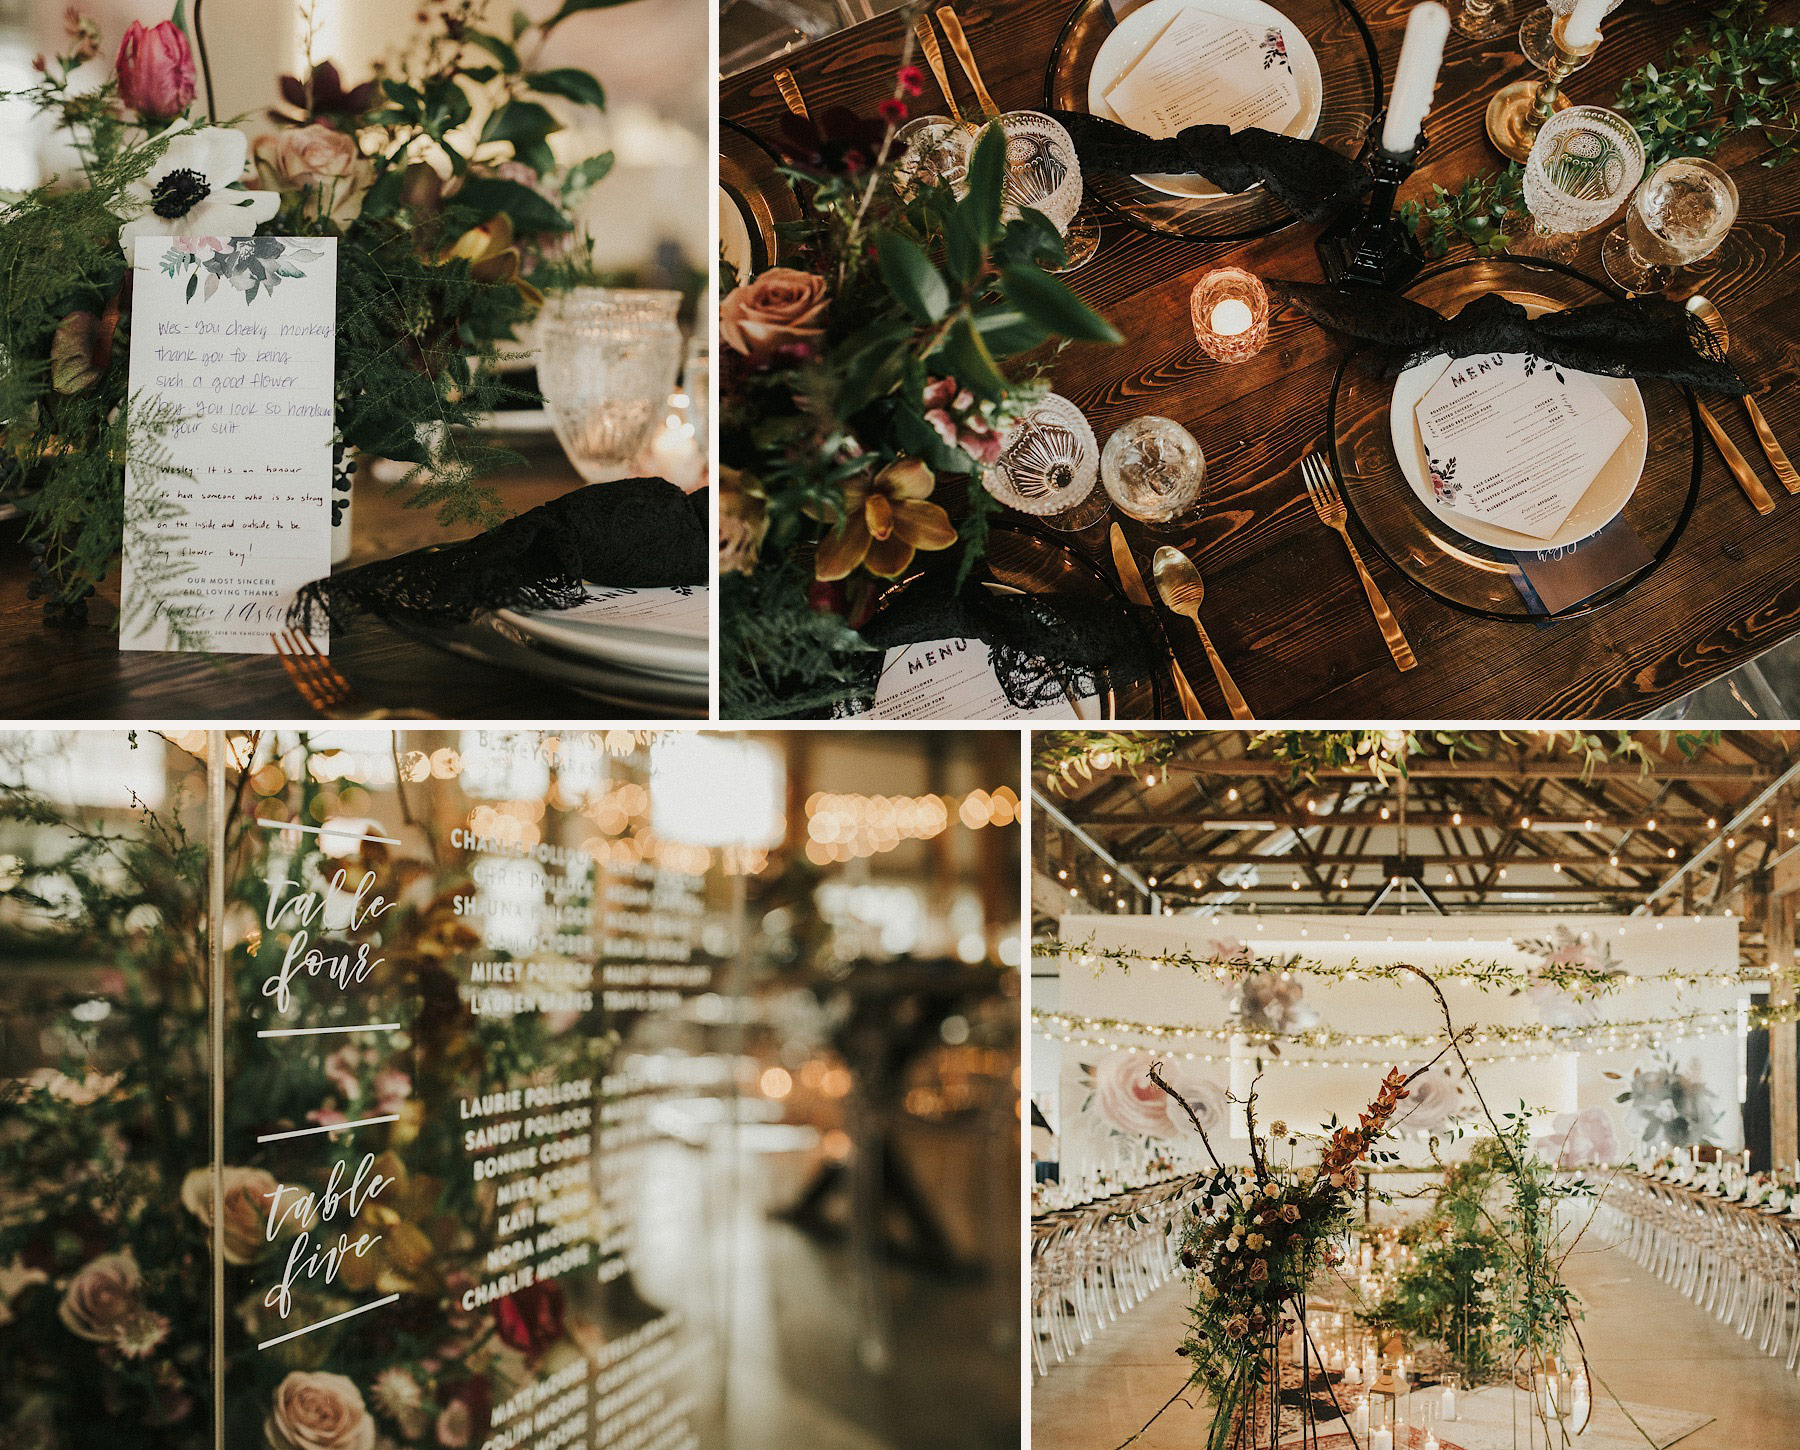 Reception Details by Bespoke Decor Aston + Charlie - The Magical Cover Shot Vancouver Wedding